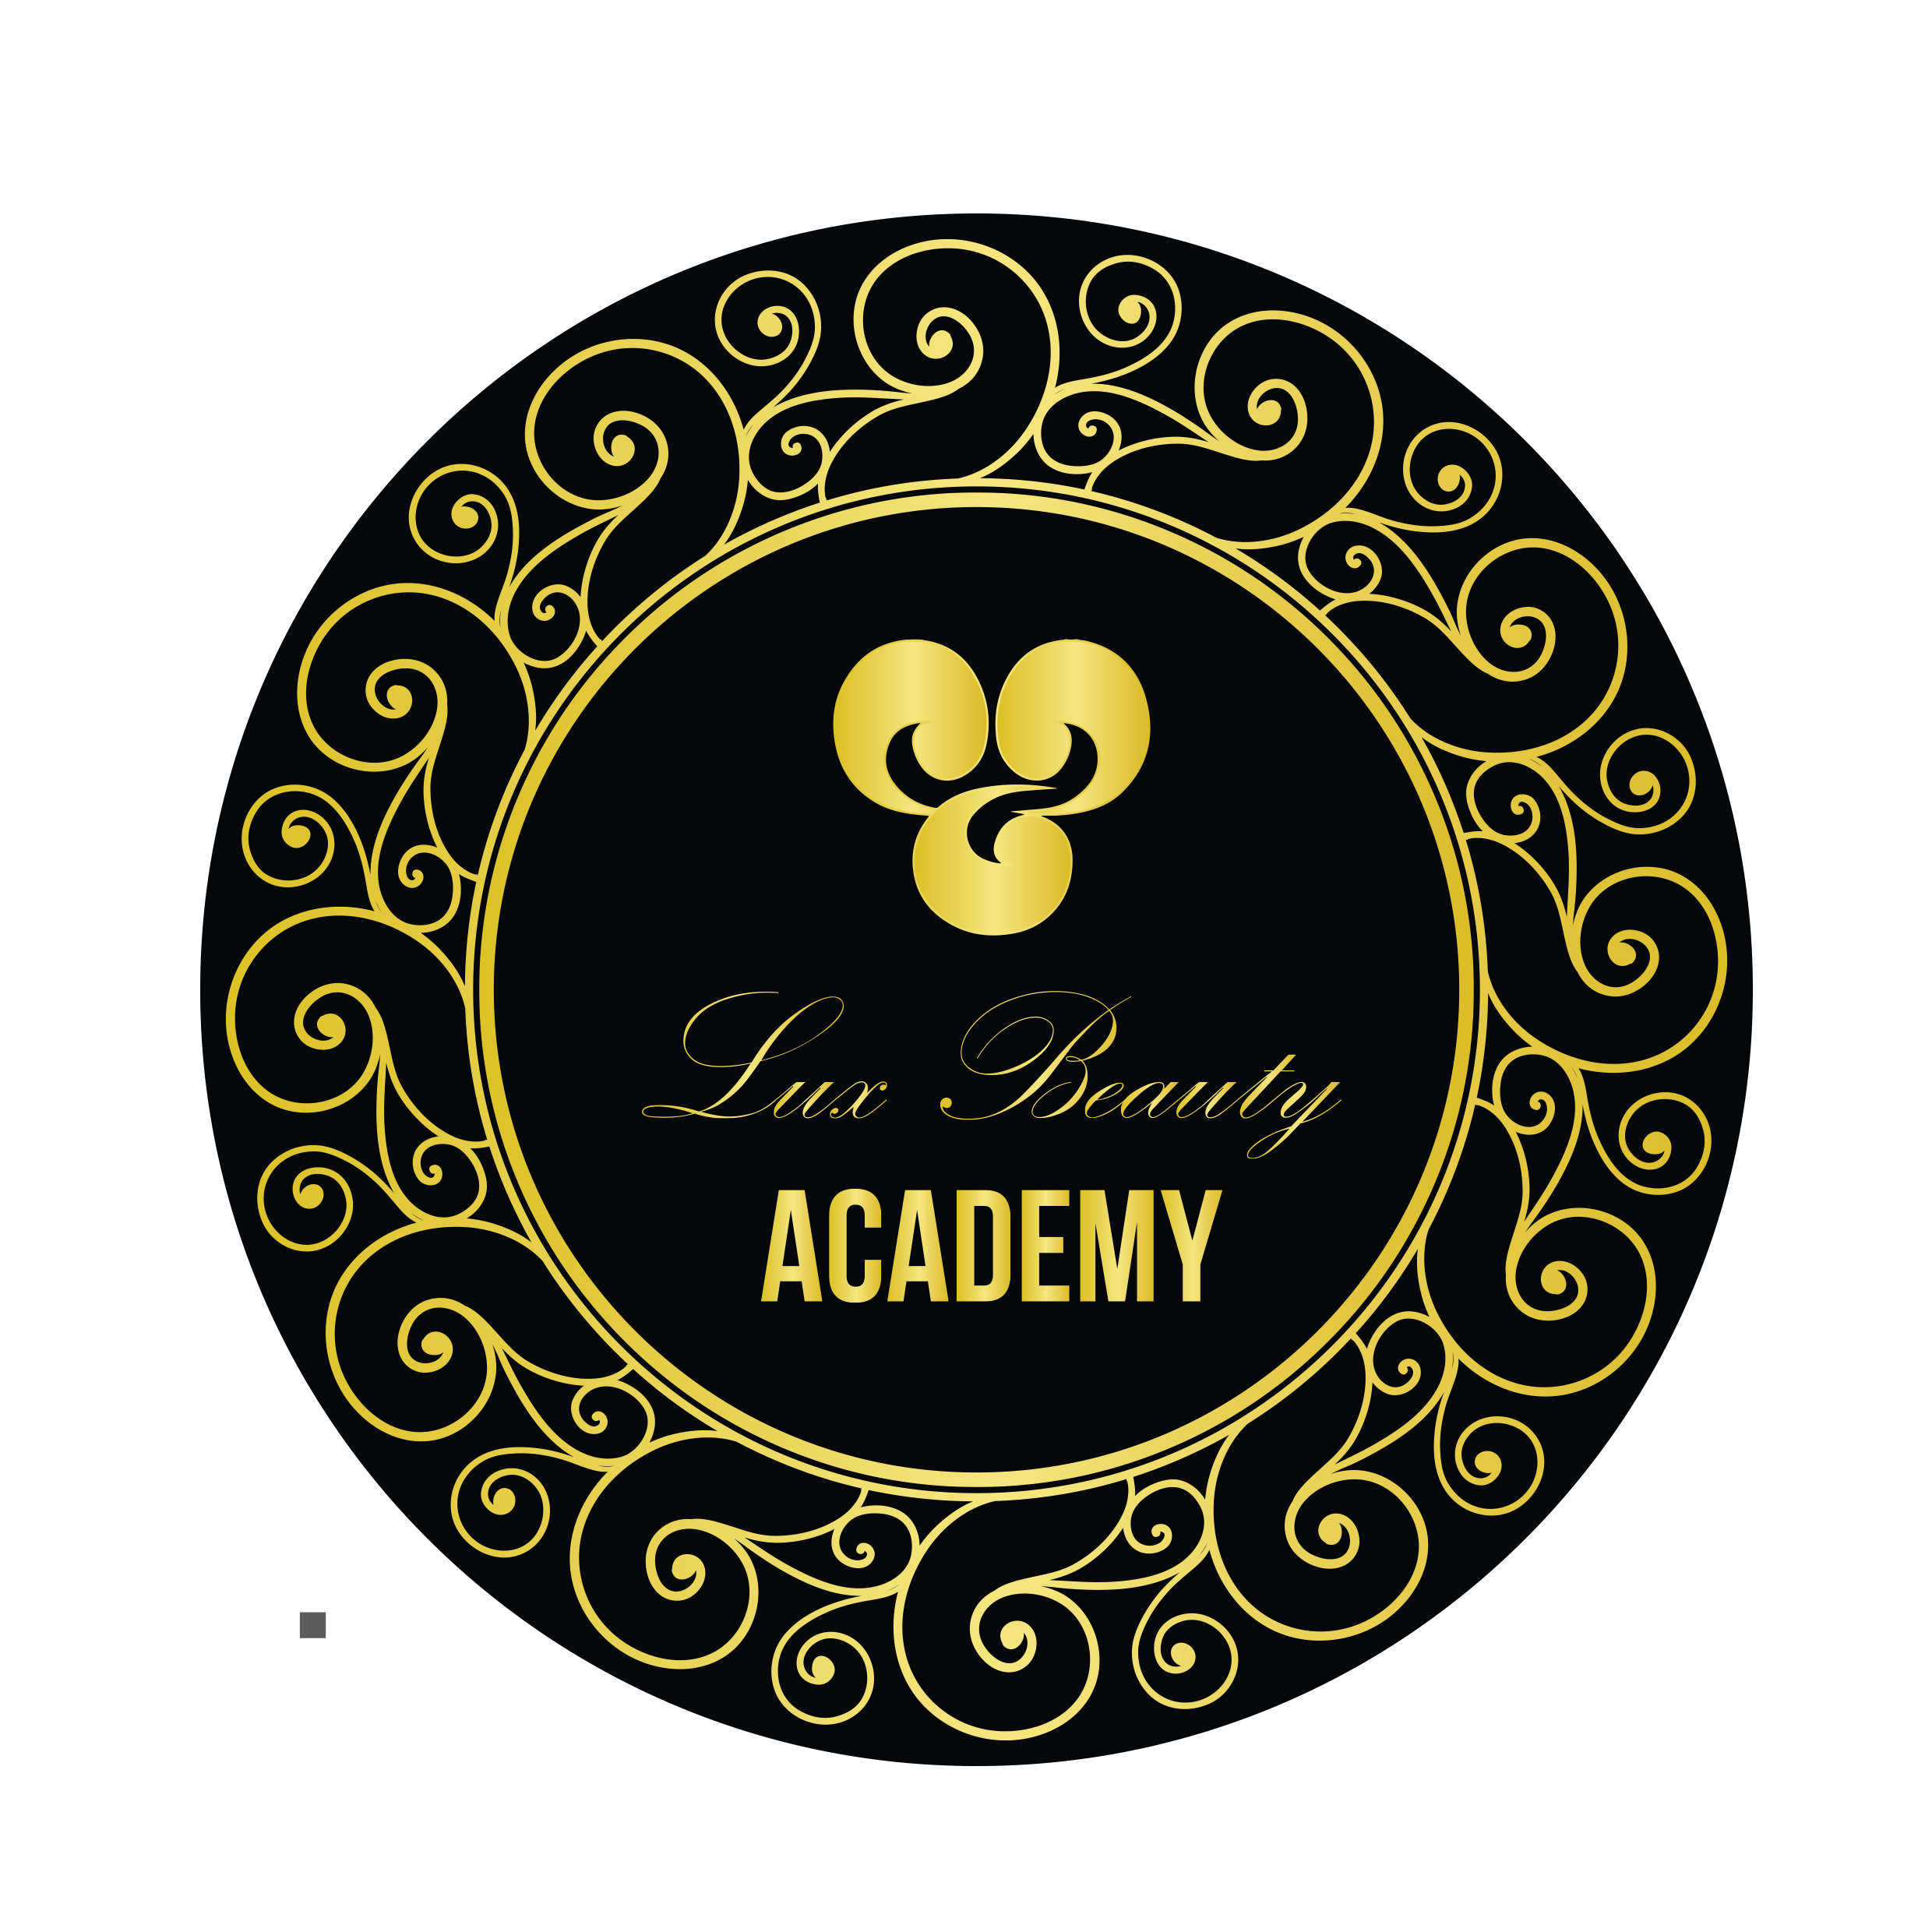 LUX BEAUTY ACADEMY